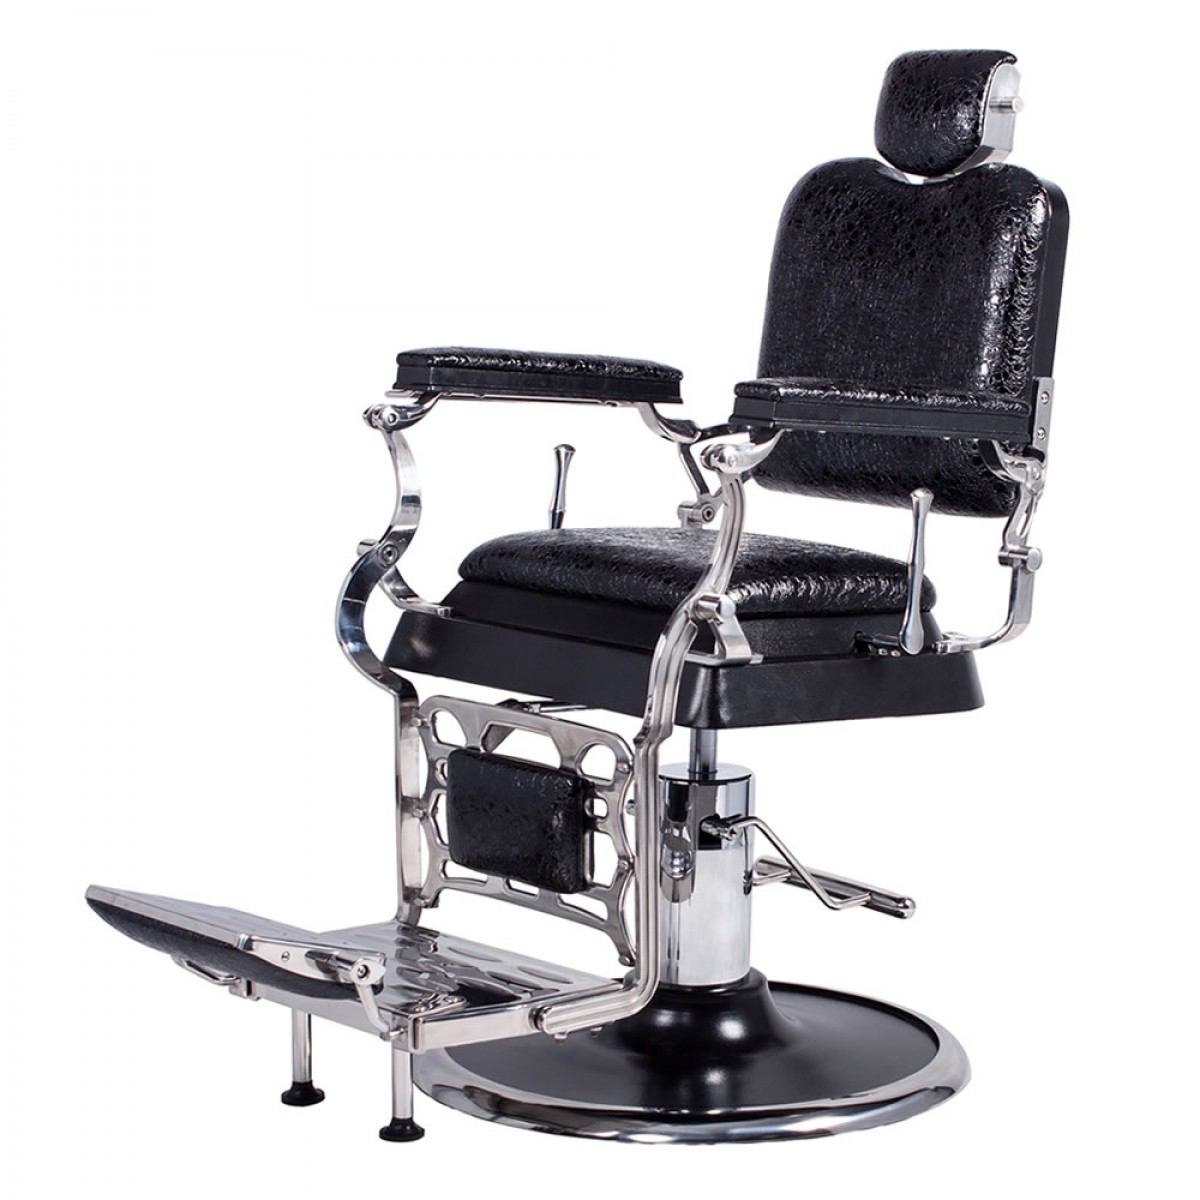 wholesale barber chairs desk quotemperor quot chair antique barbershop